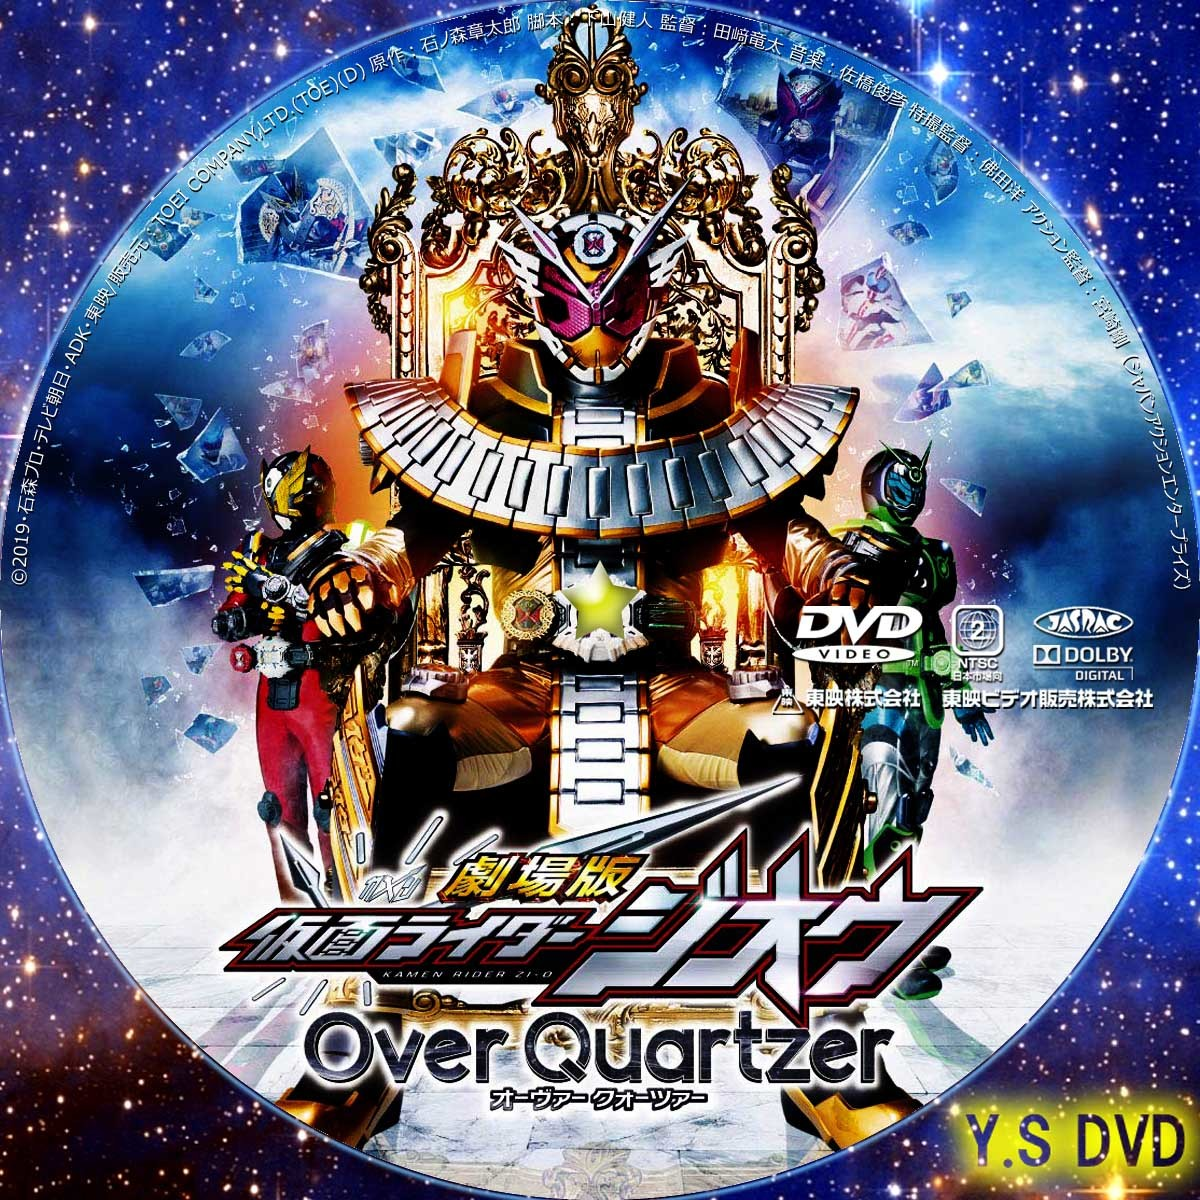 劇場 版 over quartzer